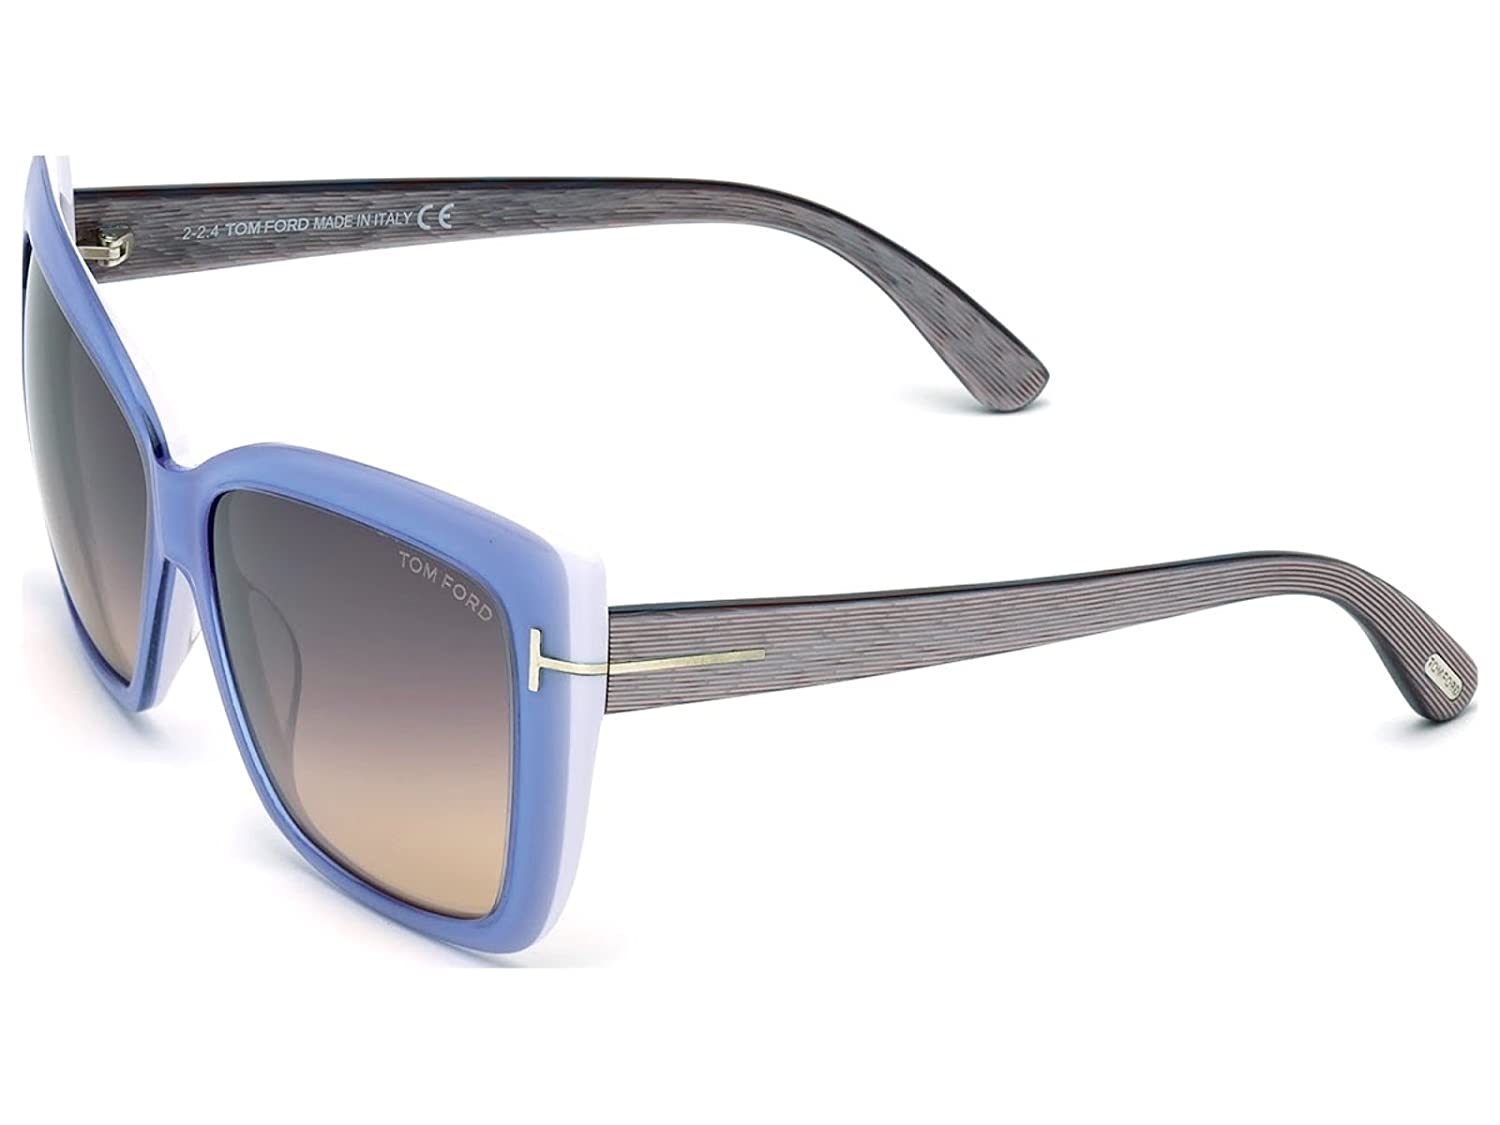 f9def6d2aa6 Tom Ford Irina Sunglasses in Shiny Light Blue FT0390 84Z 59 at Amazon  Women s Clothing store